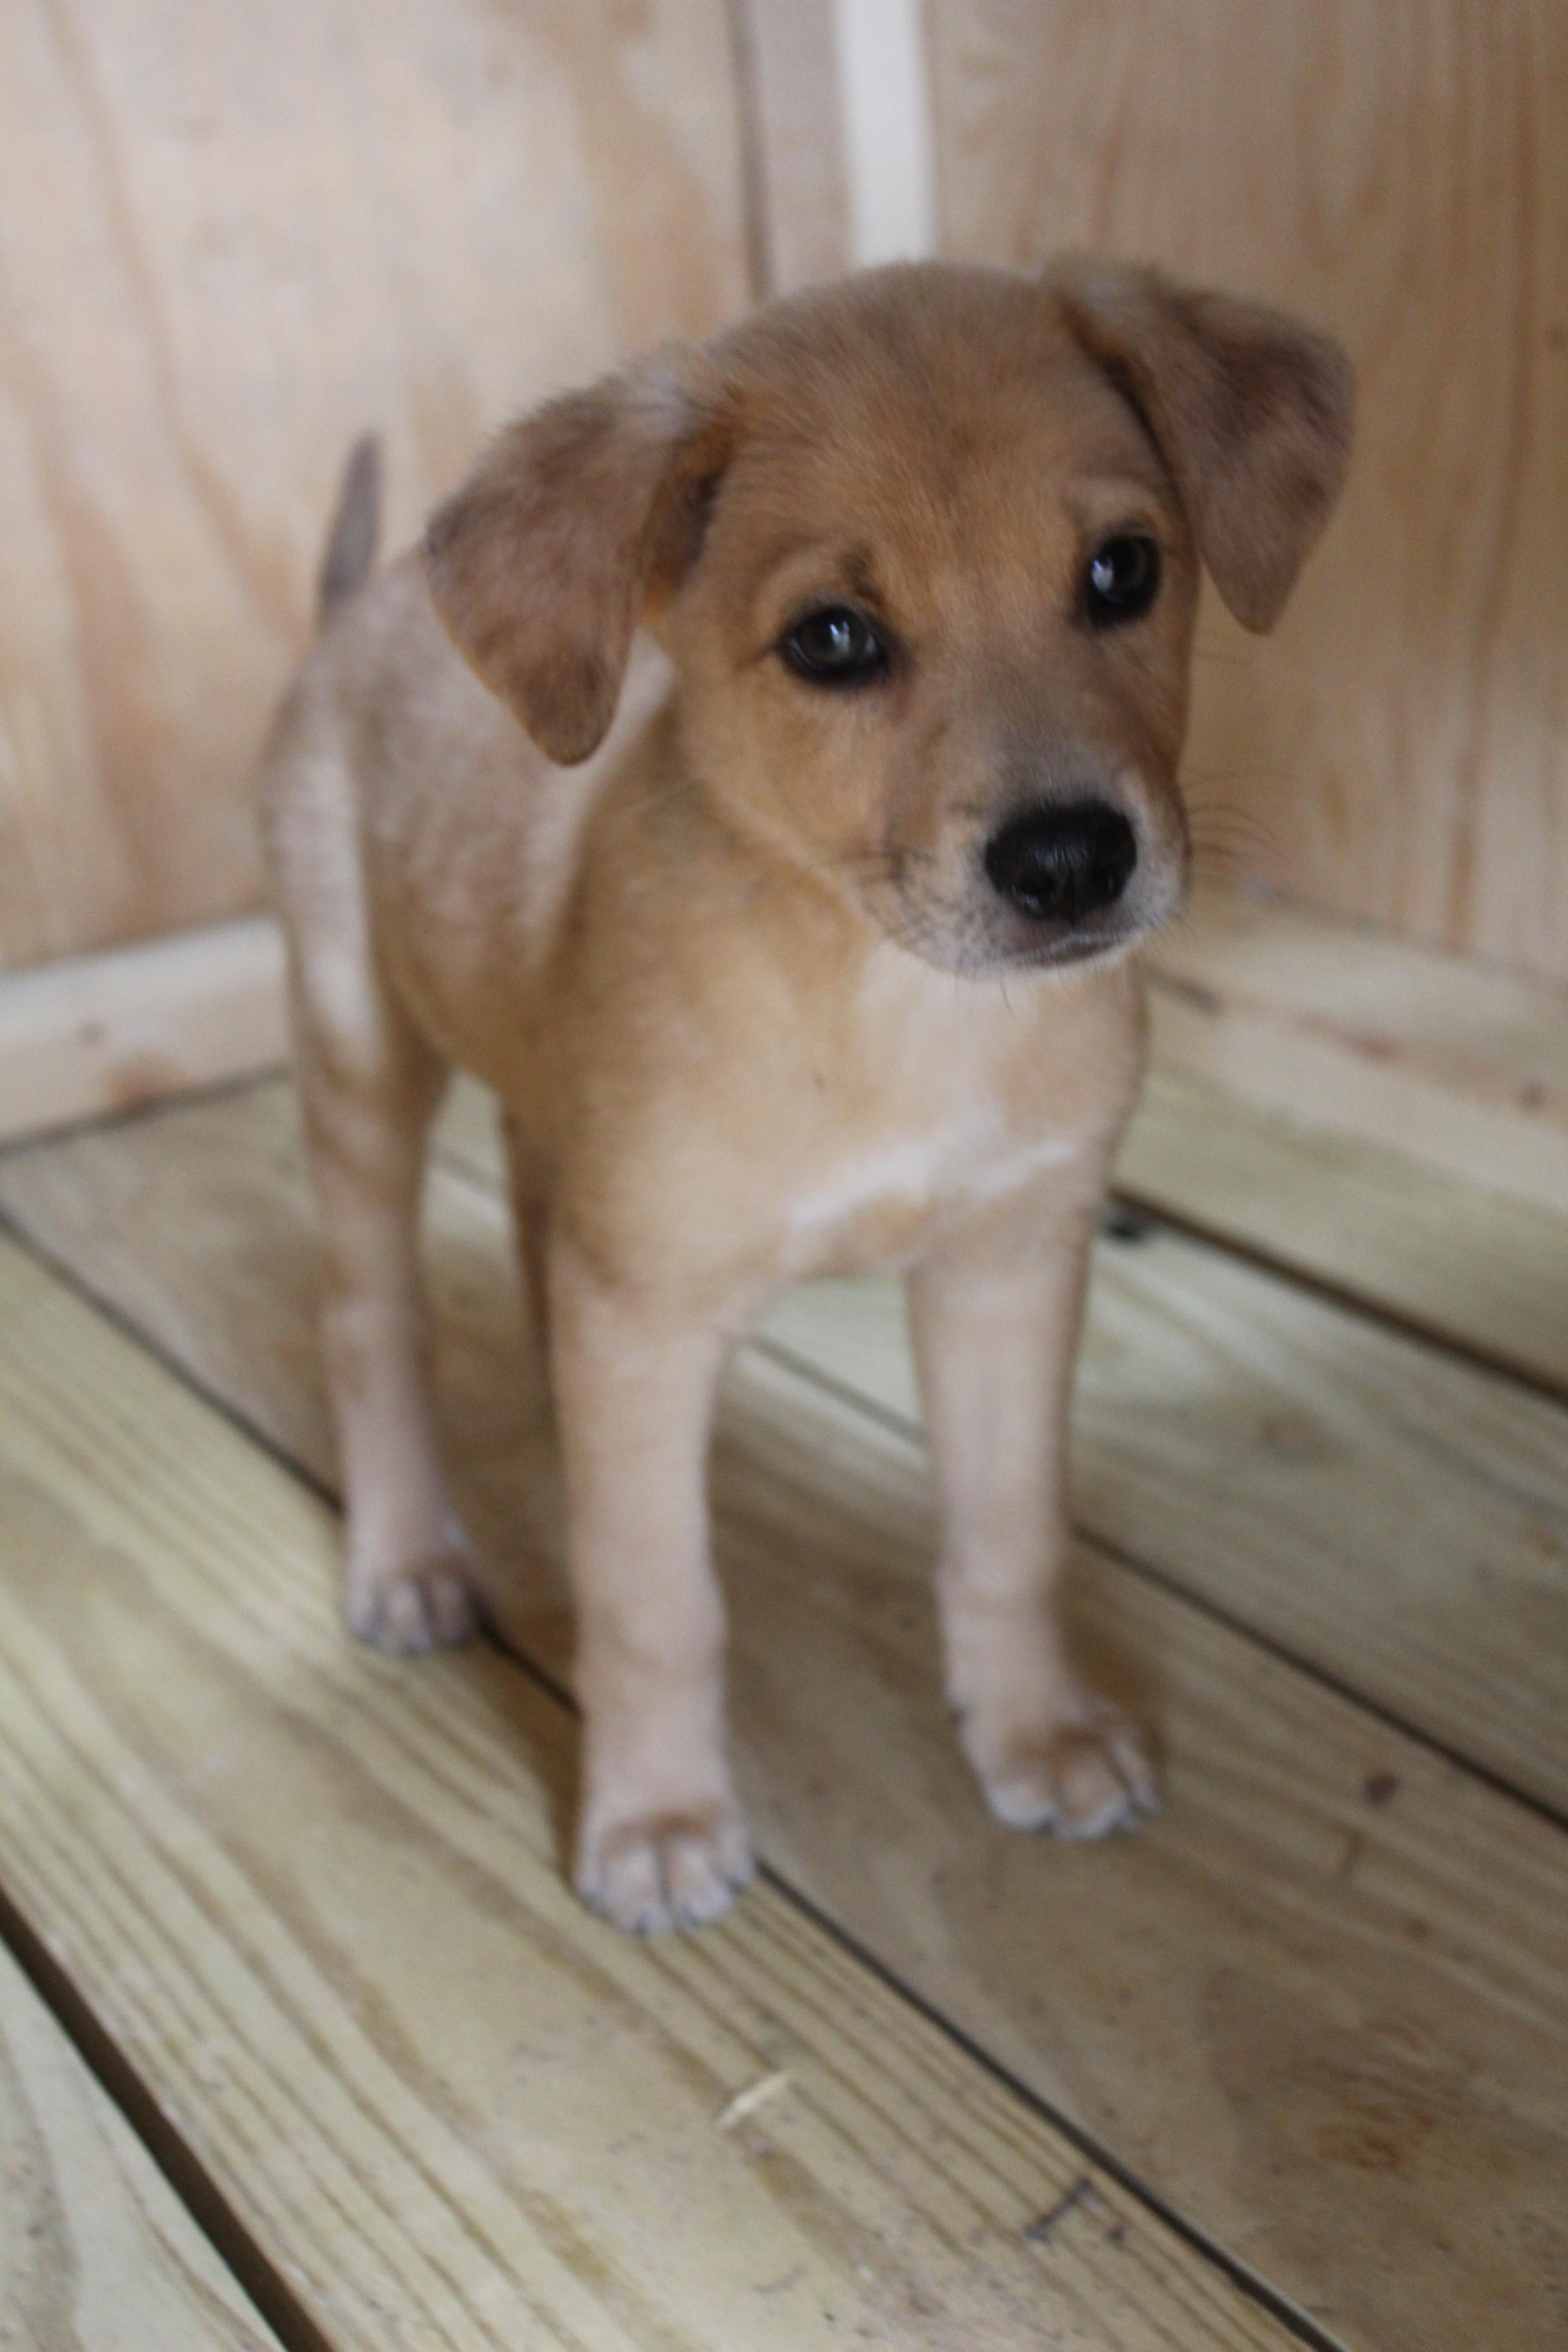 Meet Carmel An Adoptable Golden Retriever Looking For A Forever Home If You Re Looking For A New Pe Australian Cattle Dog Blue Heeler Cute Animals Cattle Dog